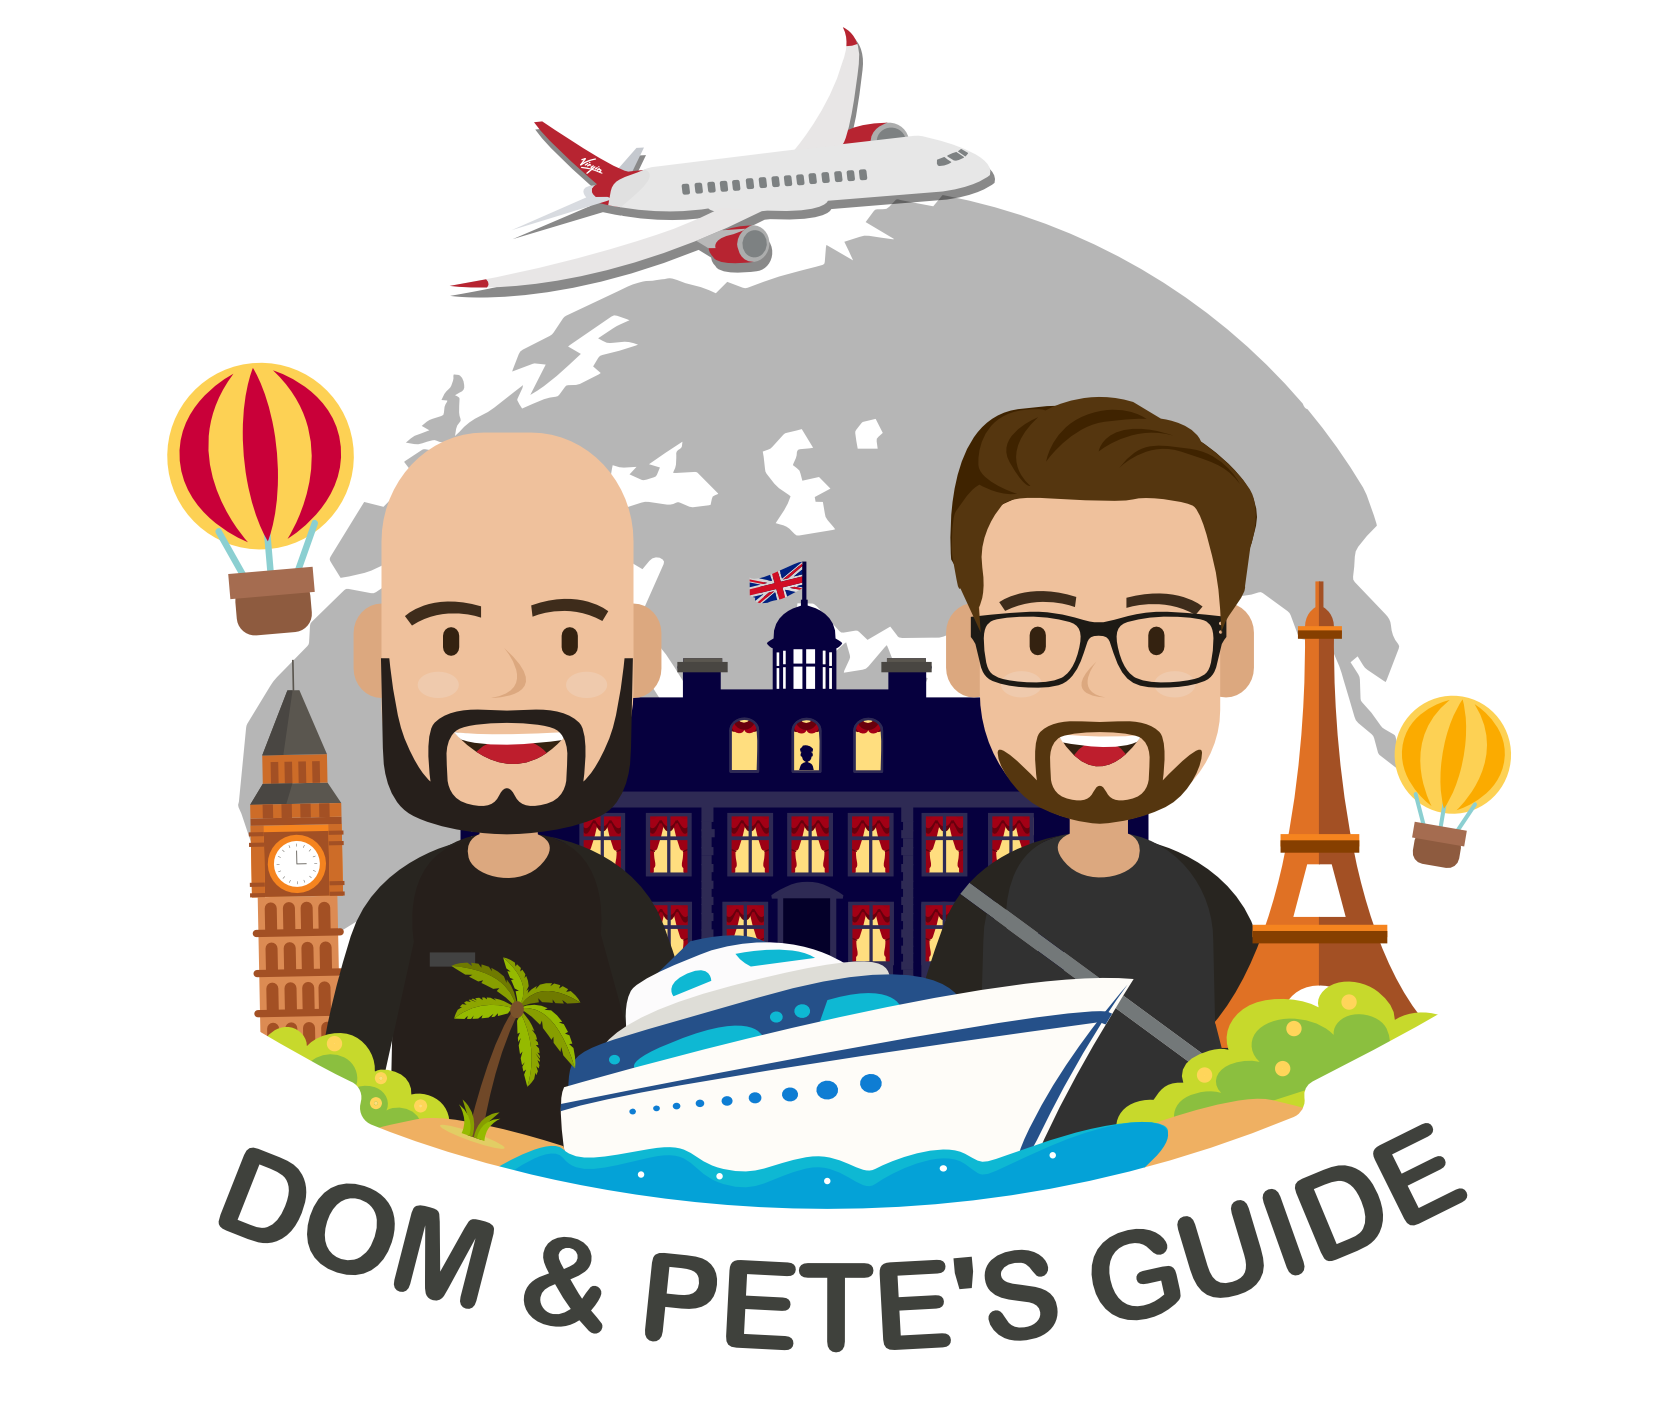 Cruise clipart cruise alaskan. Dom pete s guide